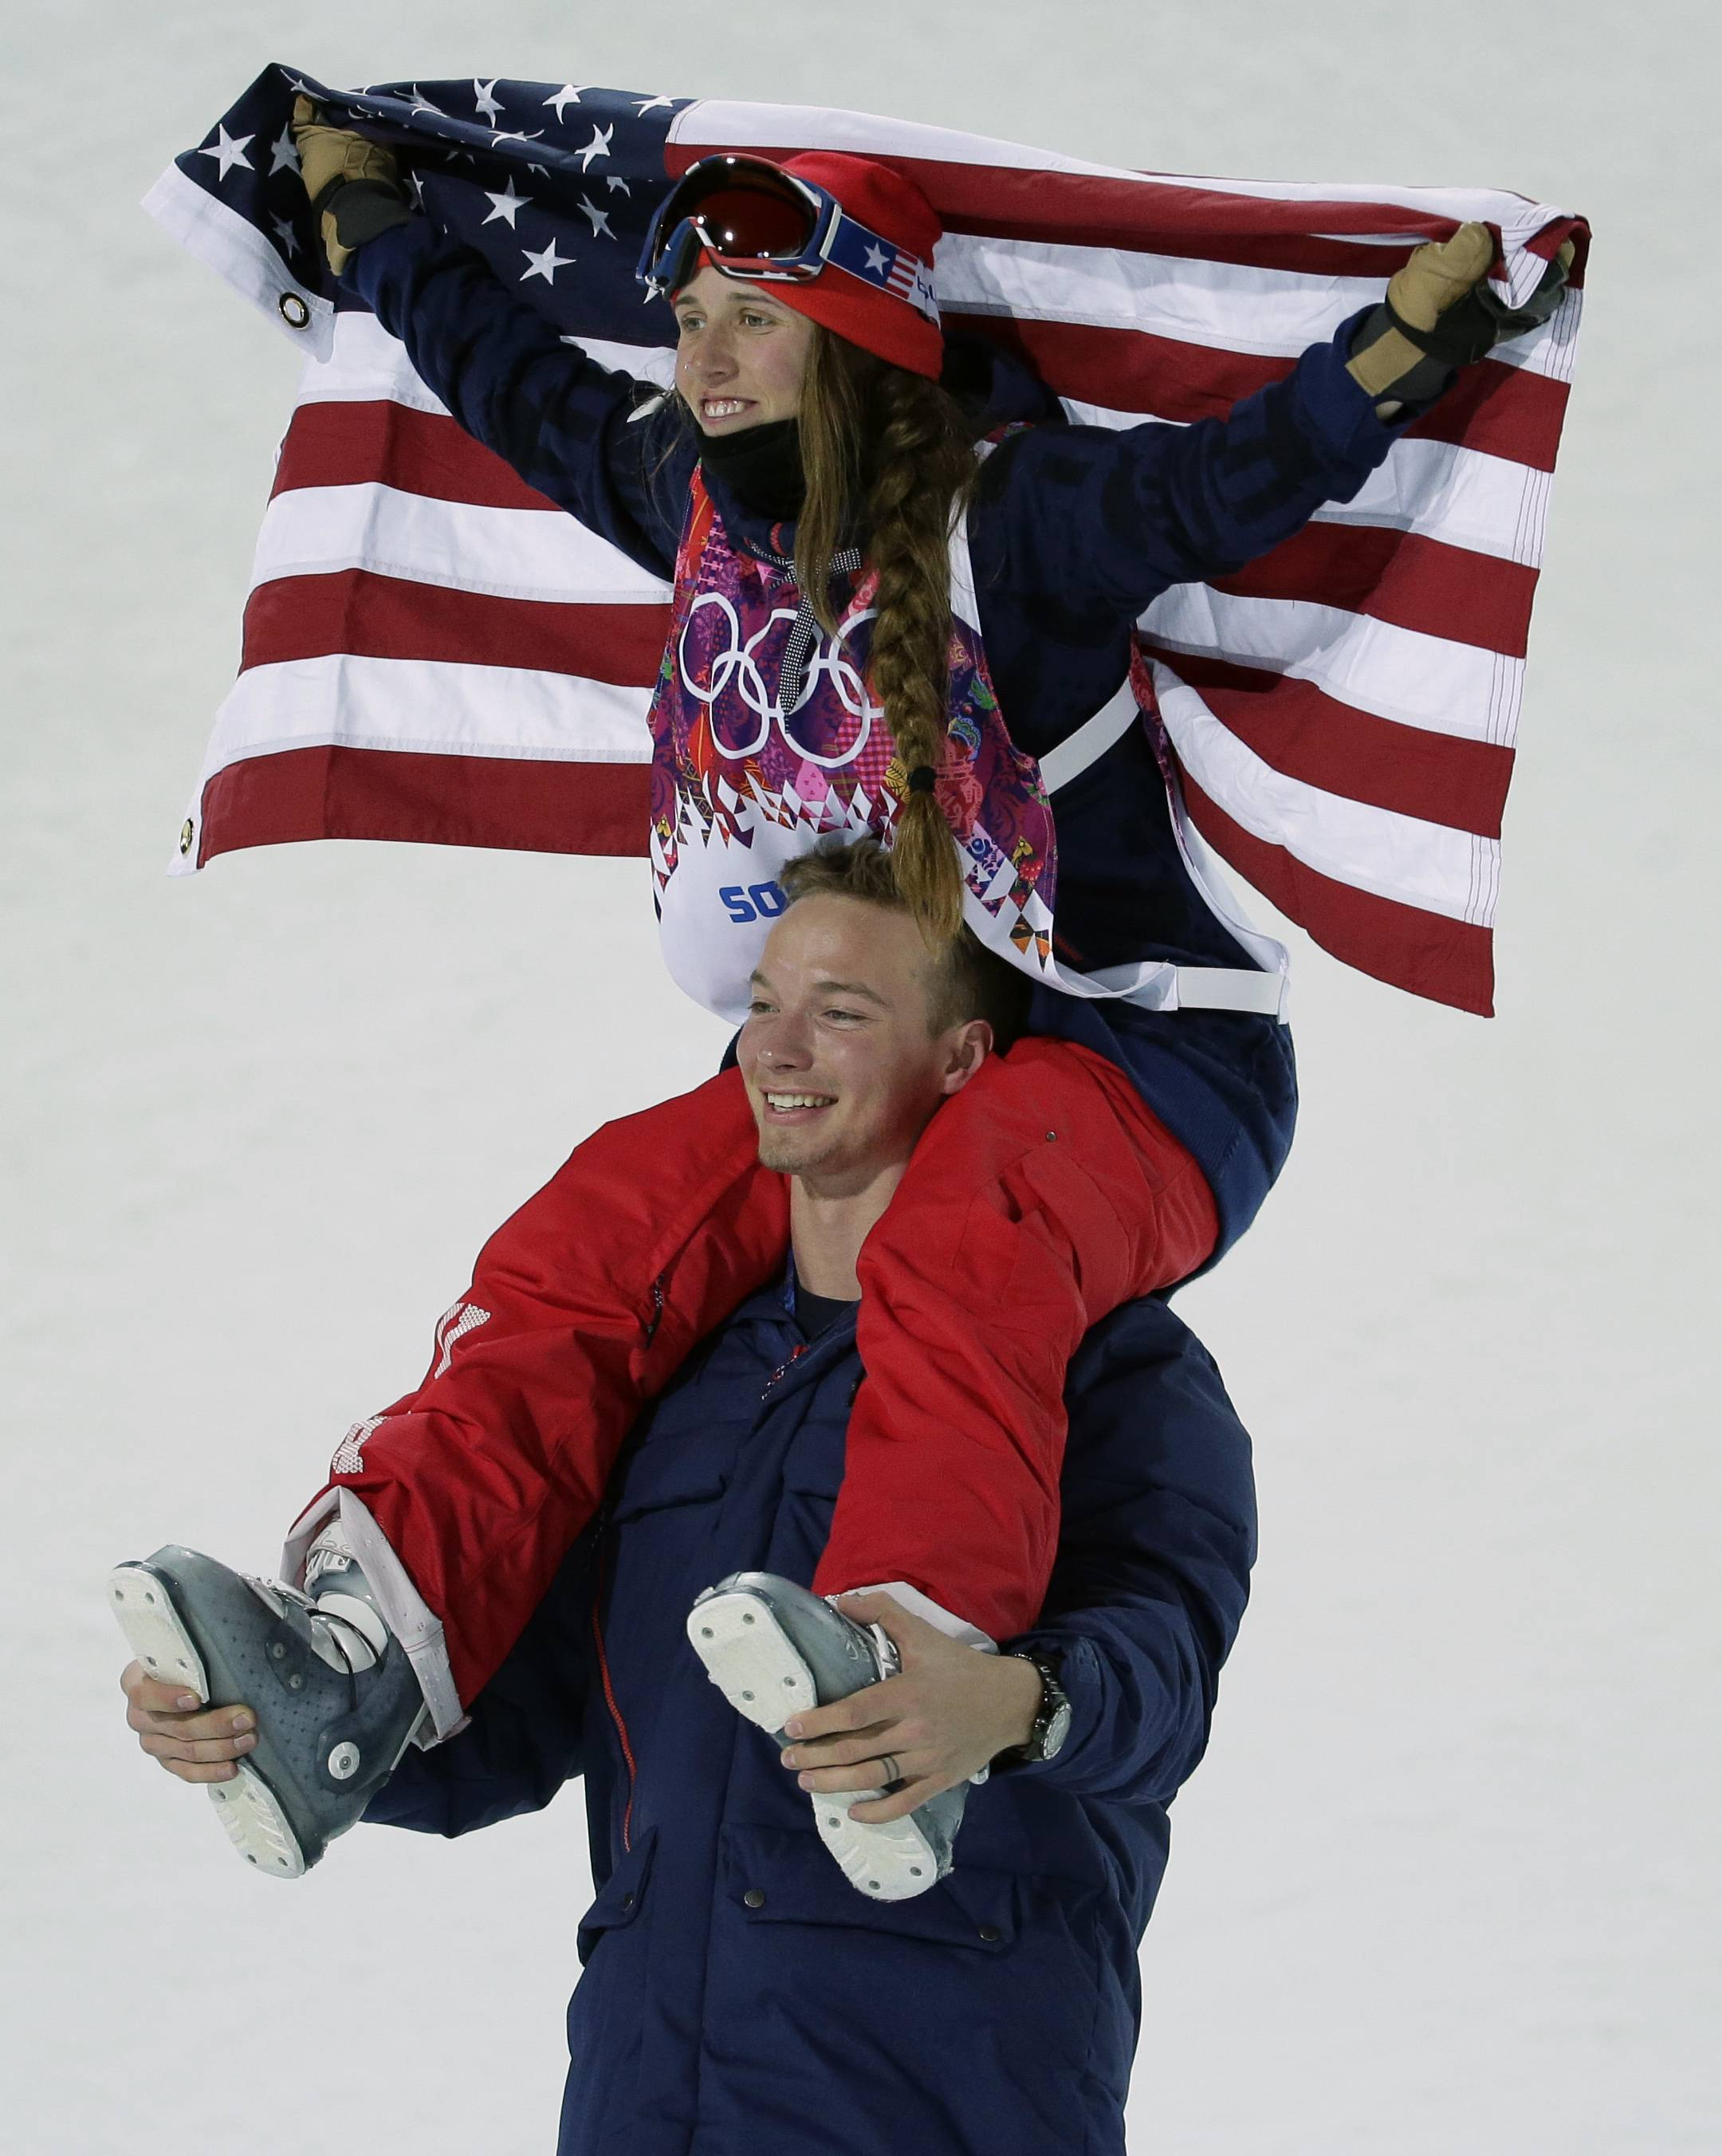 Maddie Bowman of the United States celebrates her gold medal in the women's ski halfpipe final, on the shoulders of David Wise, the men's half pipe gold medal winner.